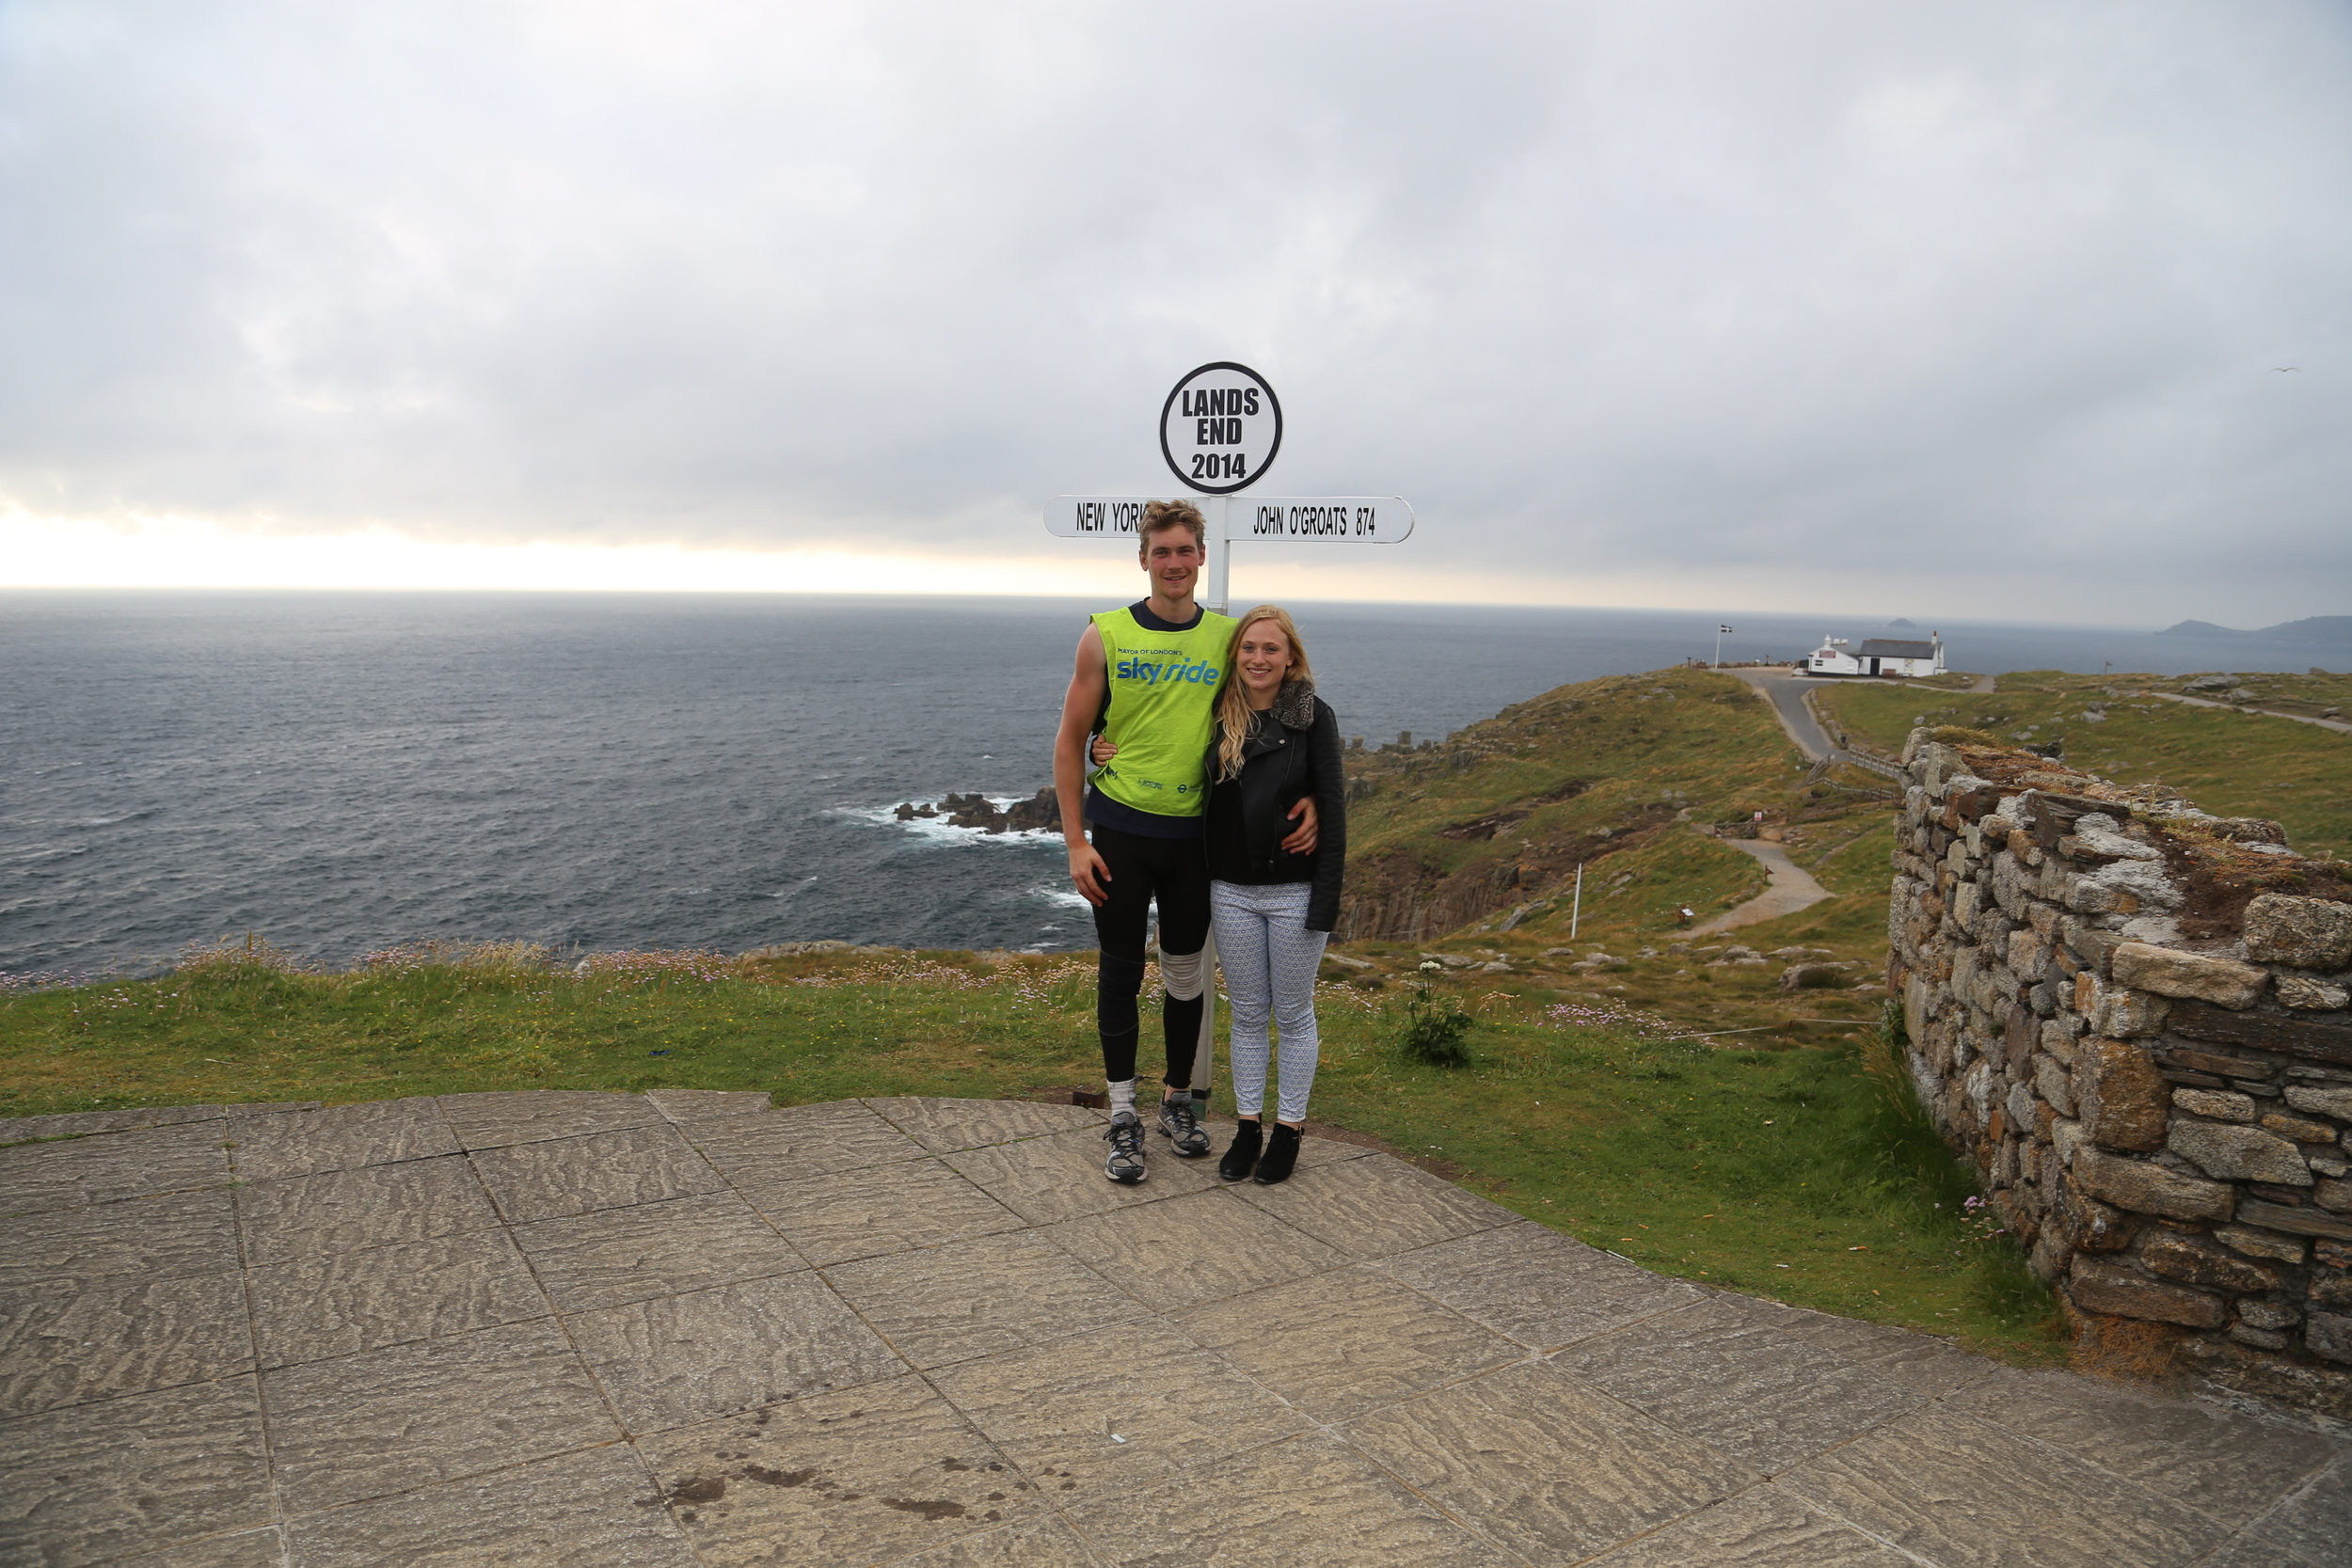 lands end, girlfriend, touring bikes, bike gear, adventure cycling, ride, bikepacking, cycle routes, touring bicycles